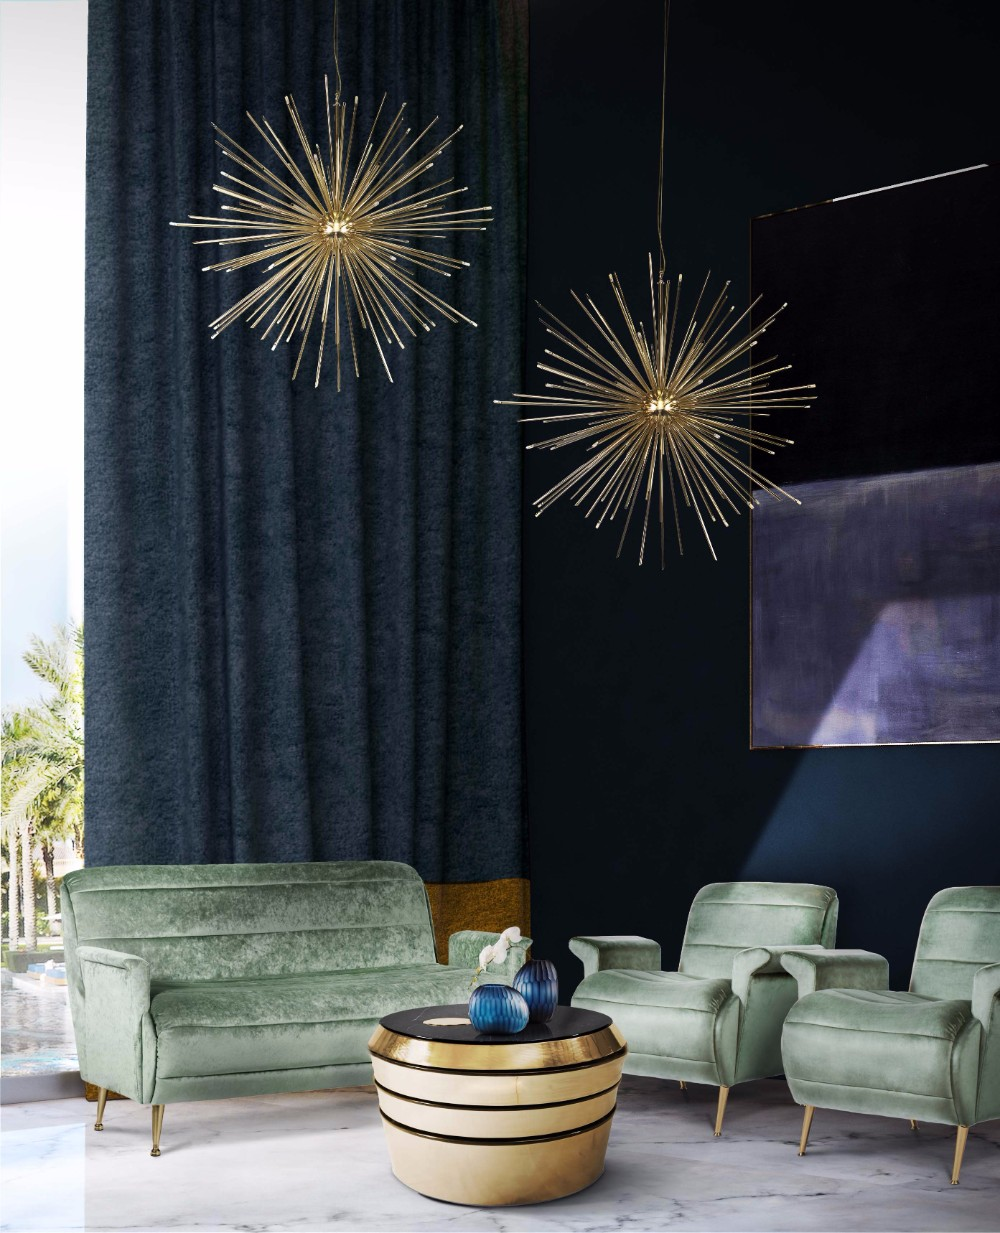 Product of the Week: Cannonball Mid-Century Pendant Light